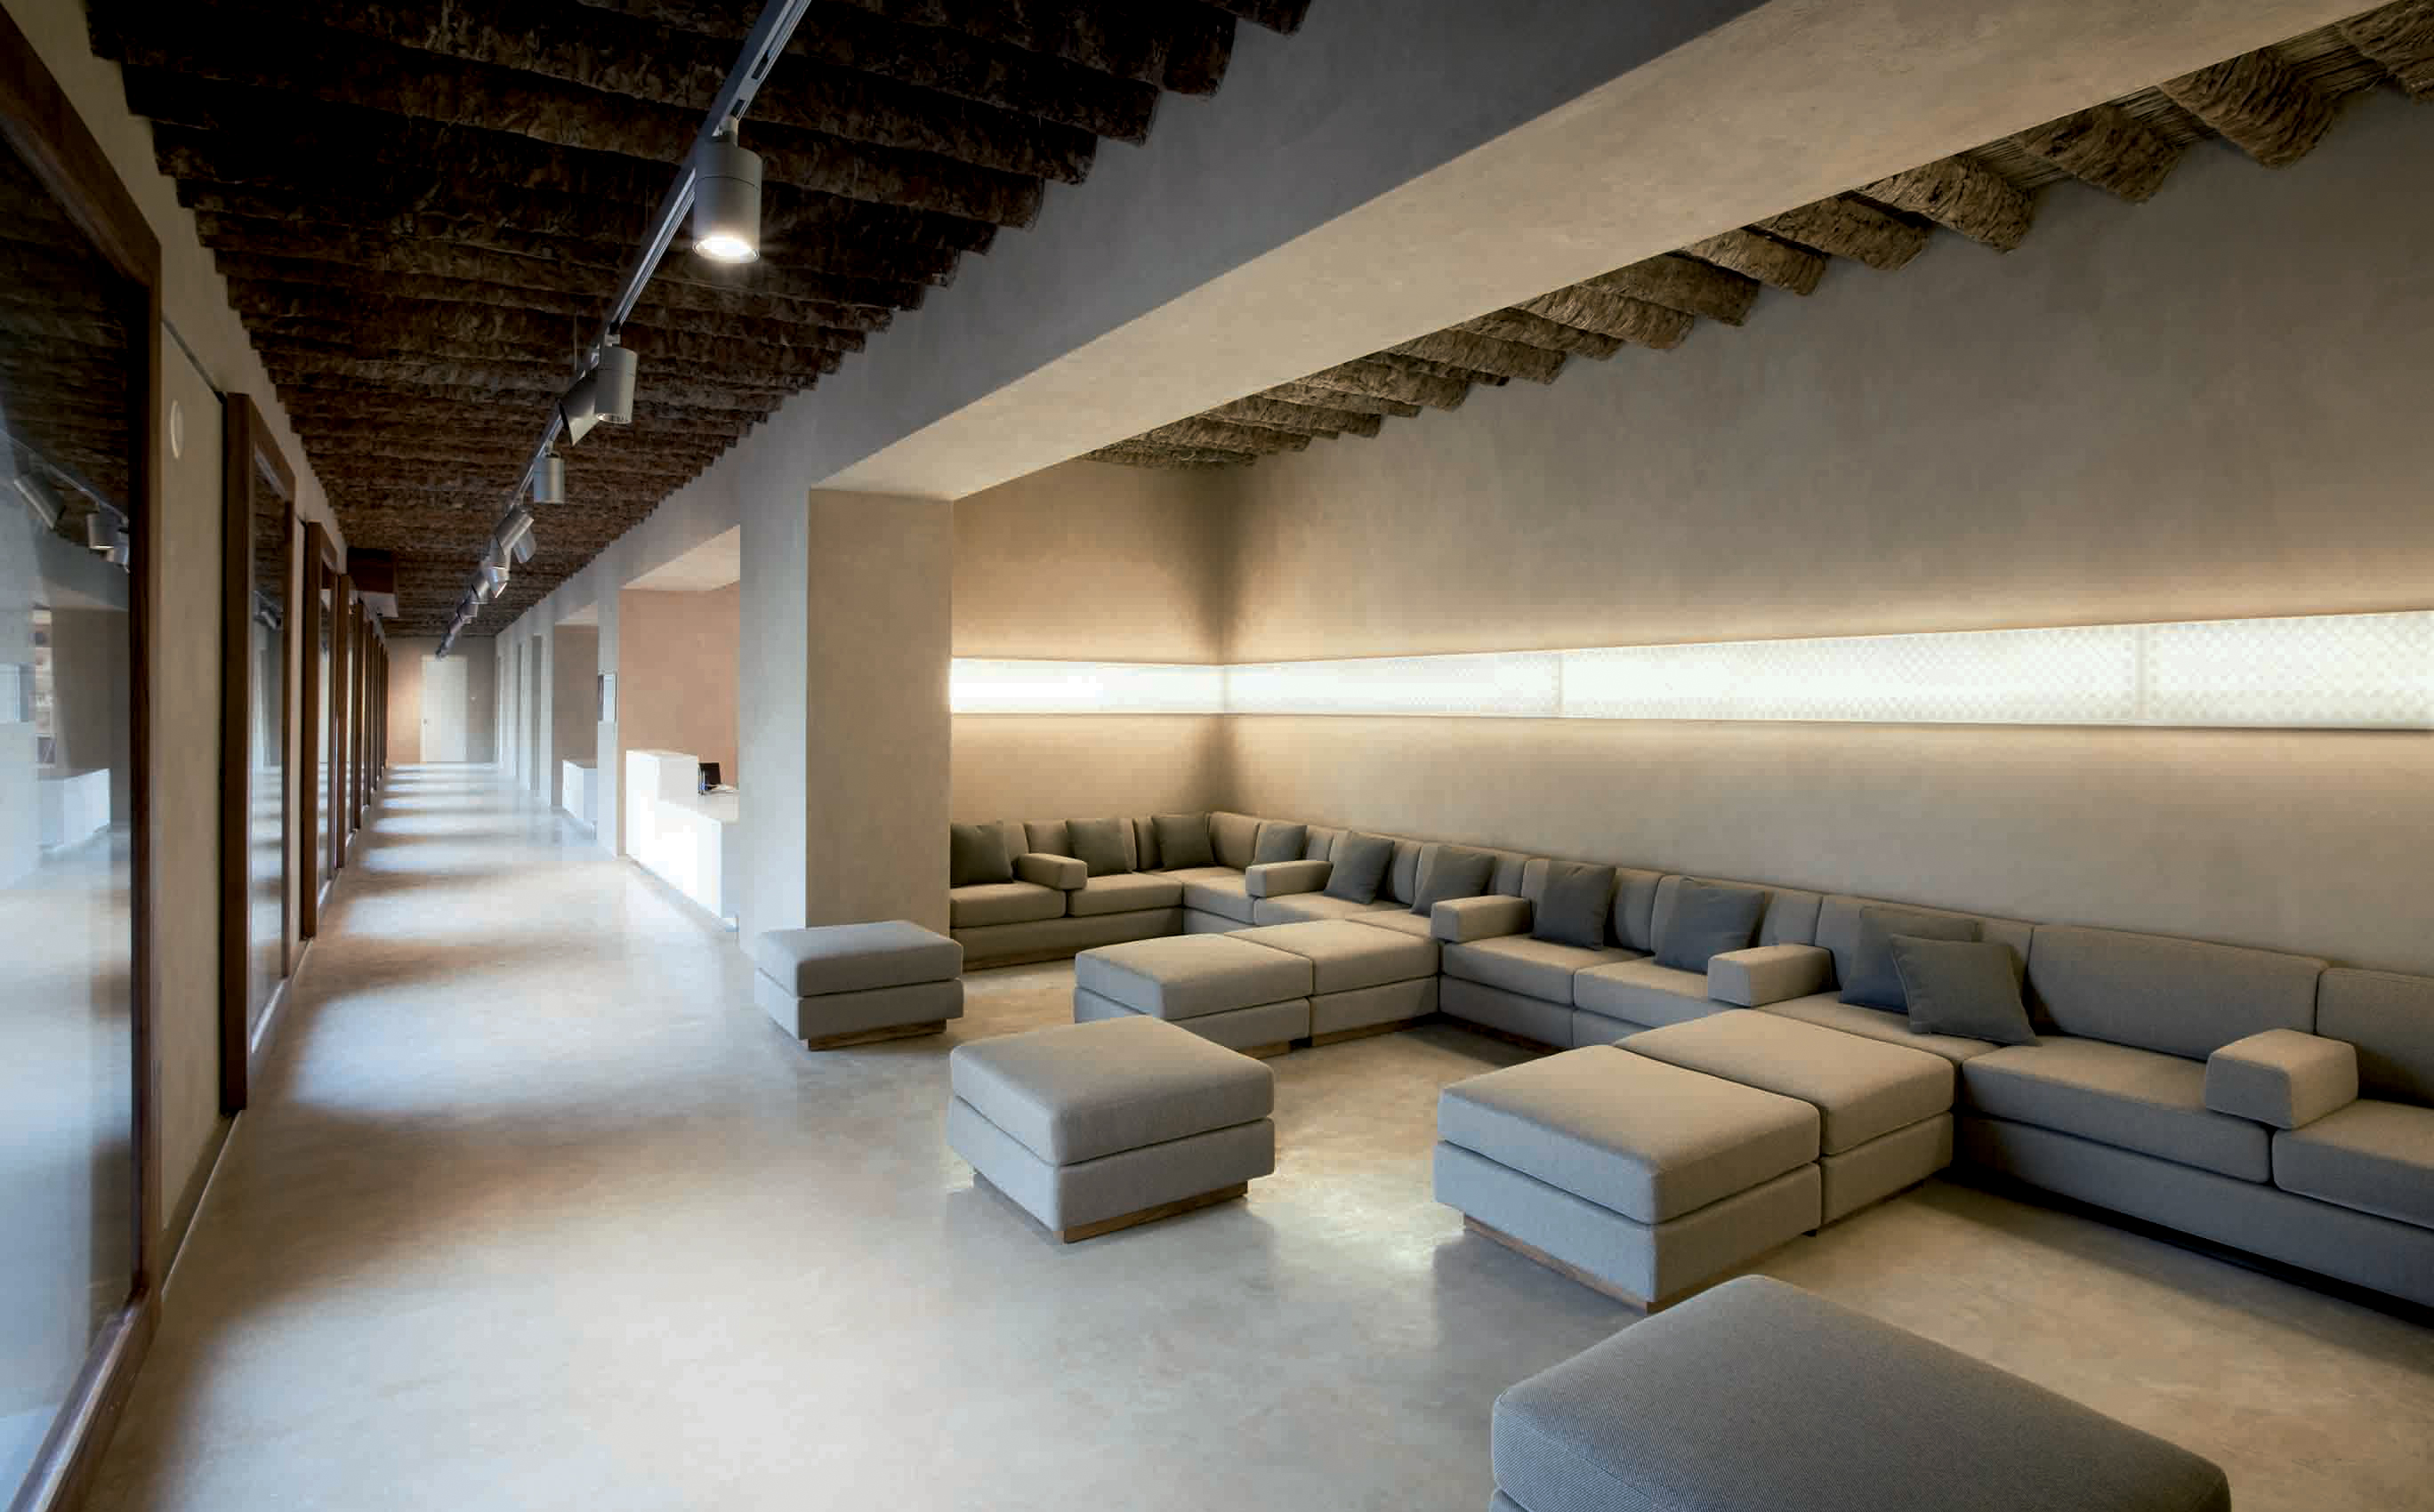 LAUREATE INTERIOR LAYOUT & DESIGN // Renovation of the Al Jahili Fort |  TERRA Award